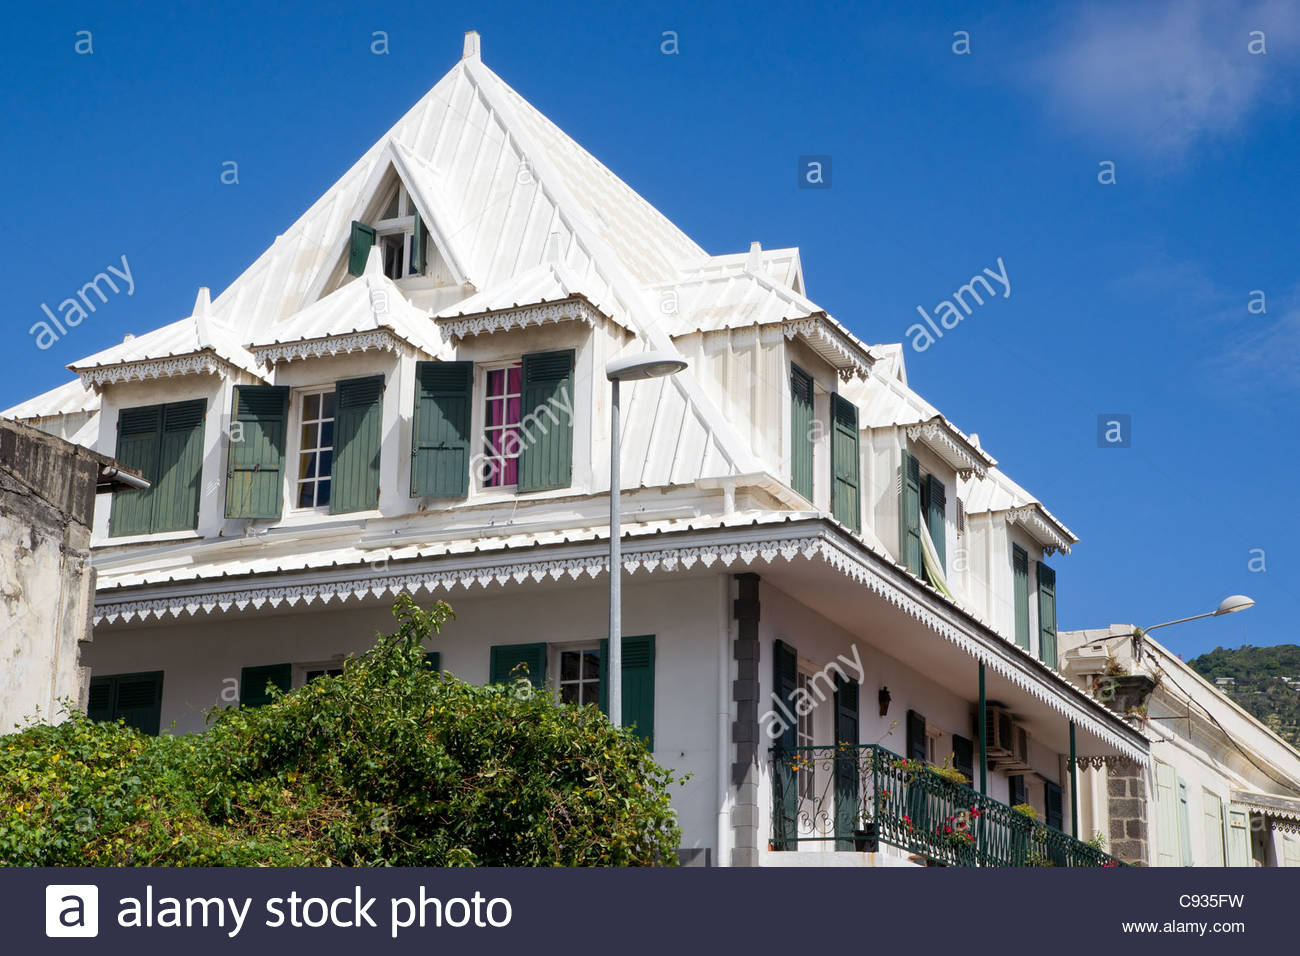 Creole house at Saint Denis on Reunion island - Stock Image